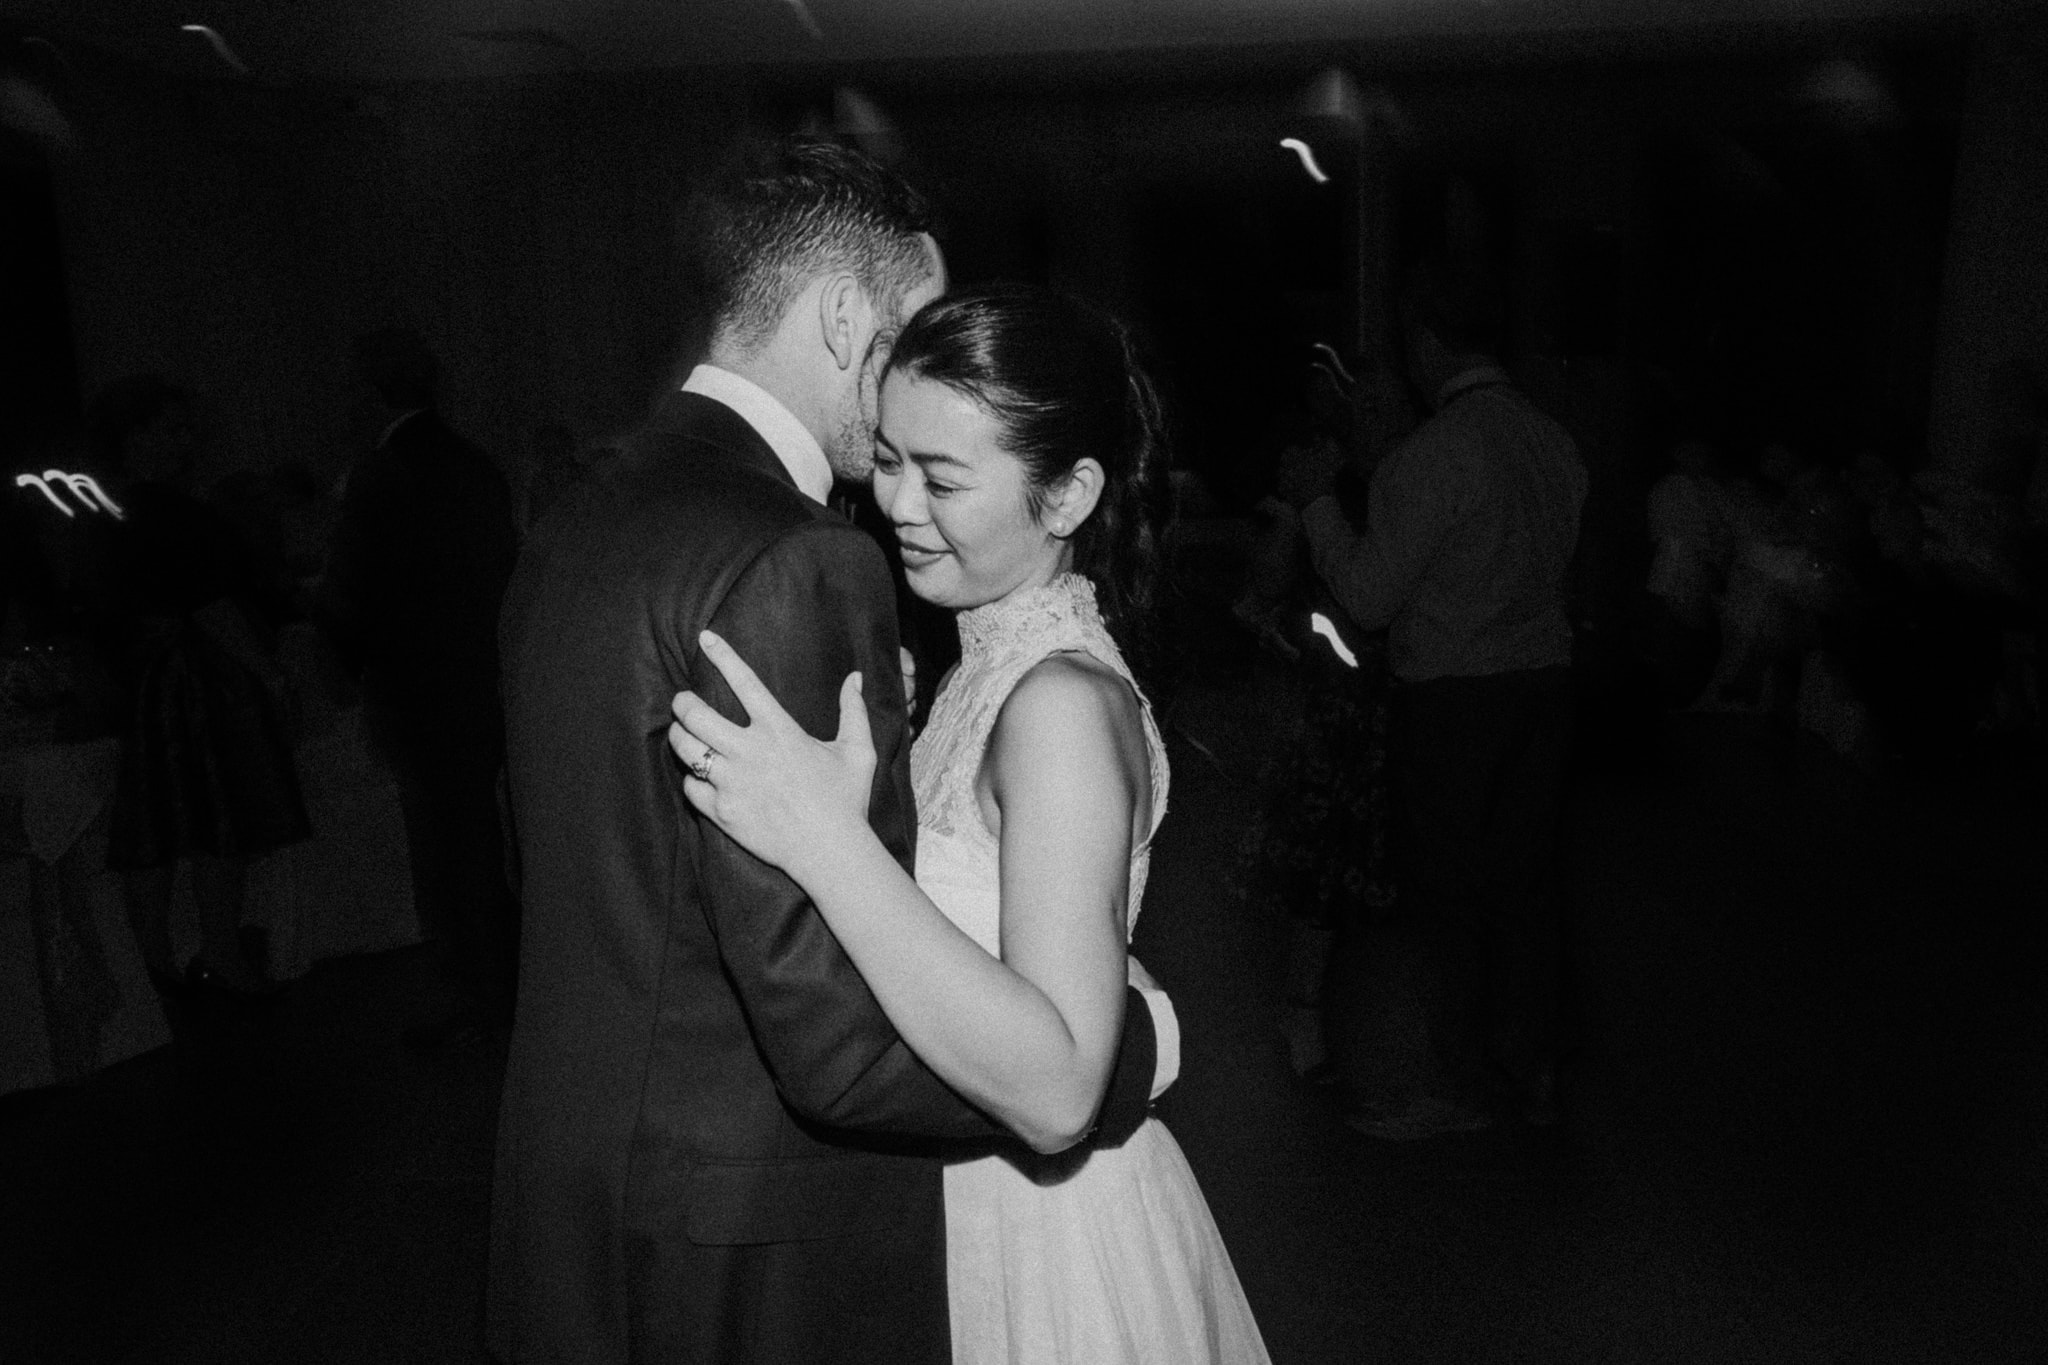 bridal waltz photos - black and white - emotion